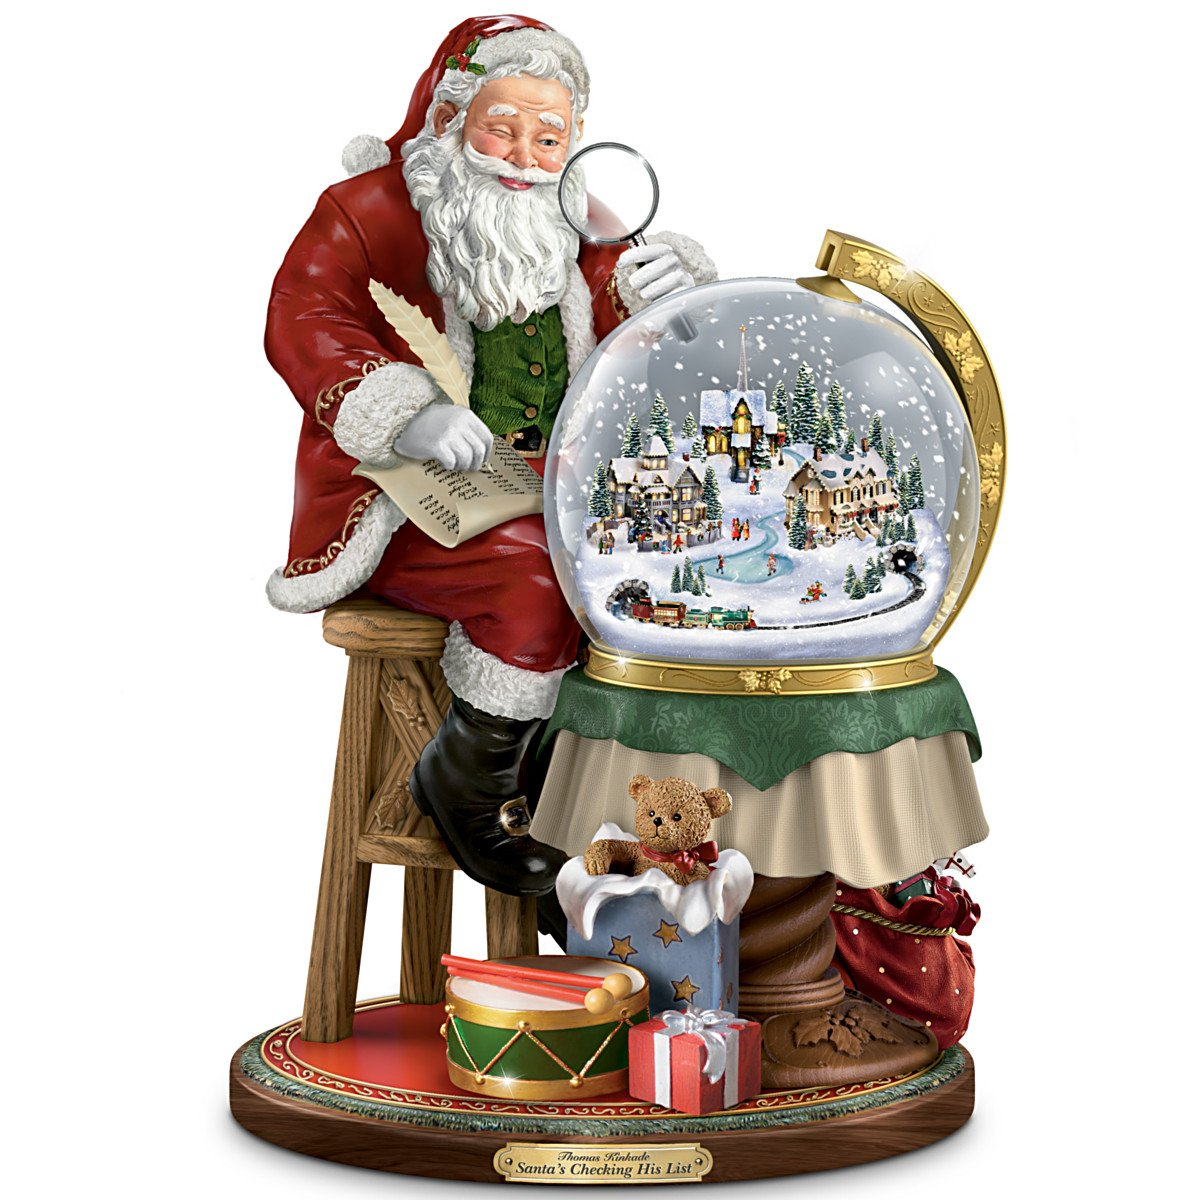 Thomas Kinkade Santas Checking His List Musical Sculpture With Swirling Snow by The Bradford Exchange